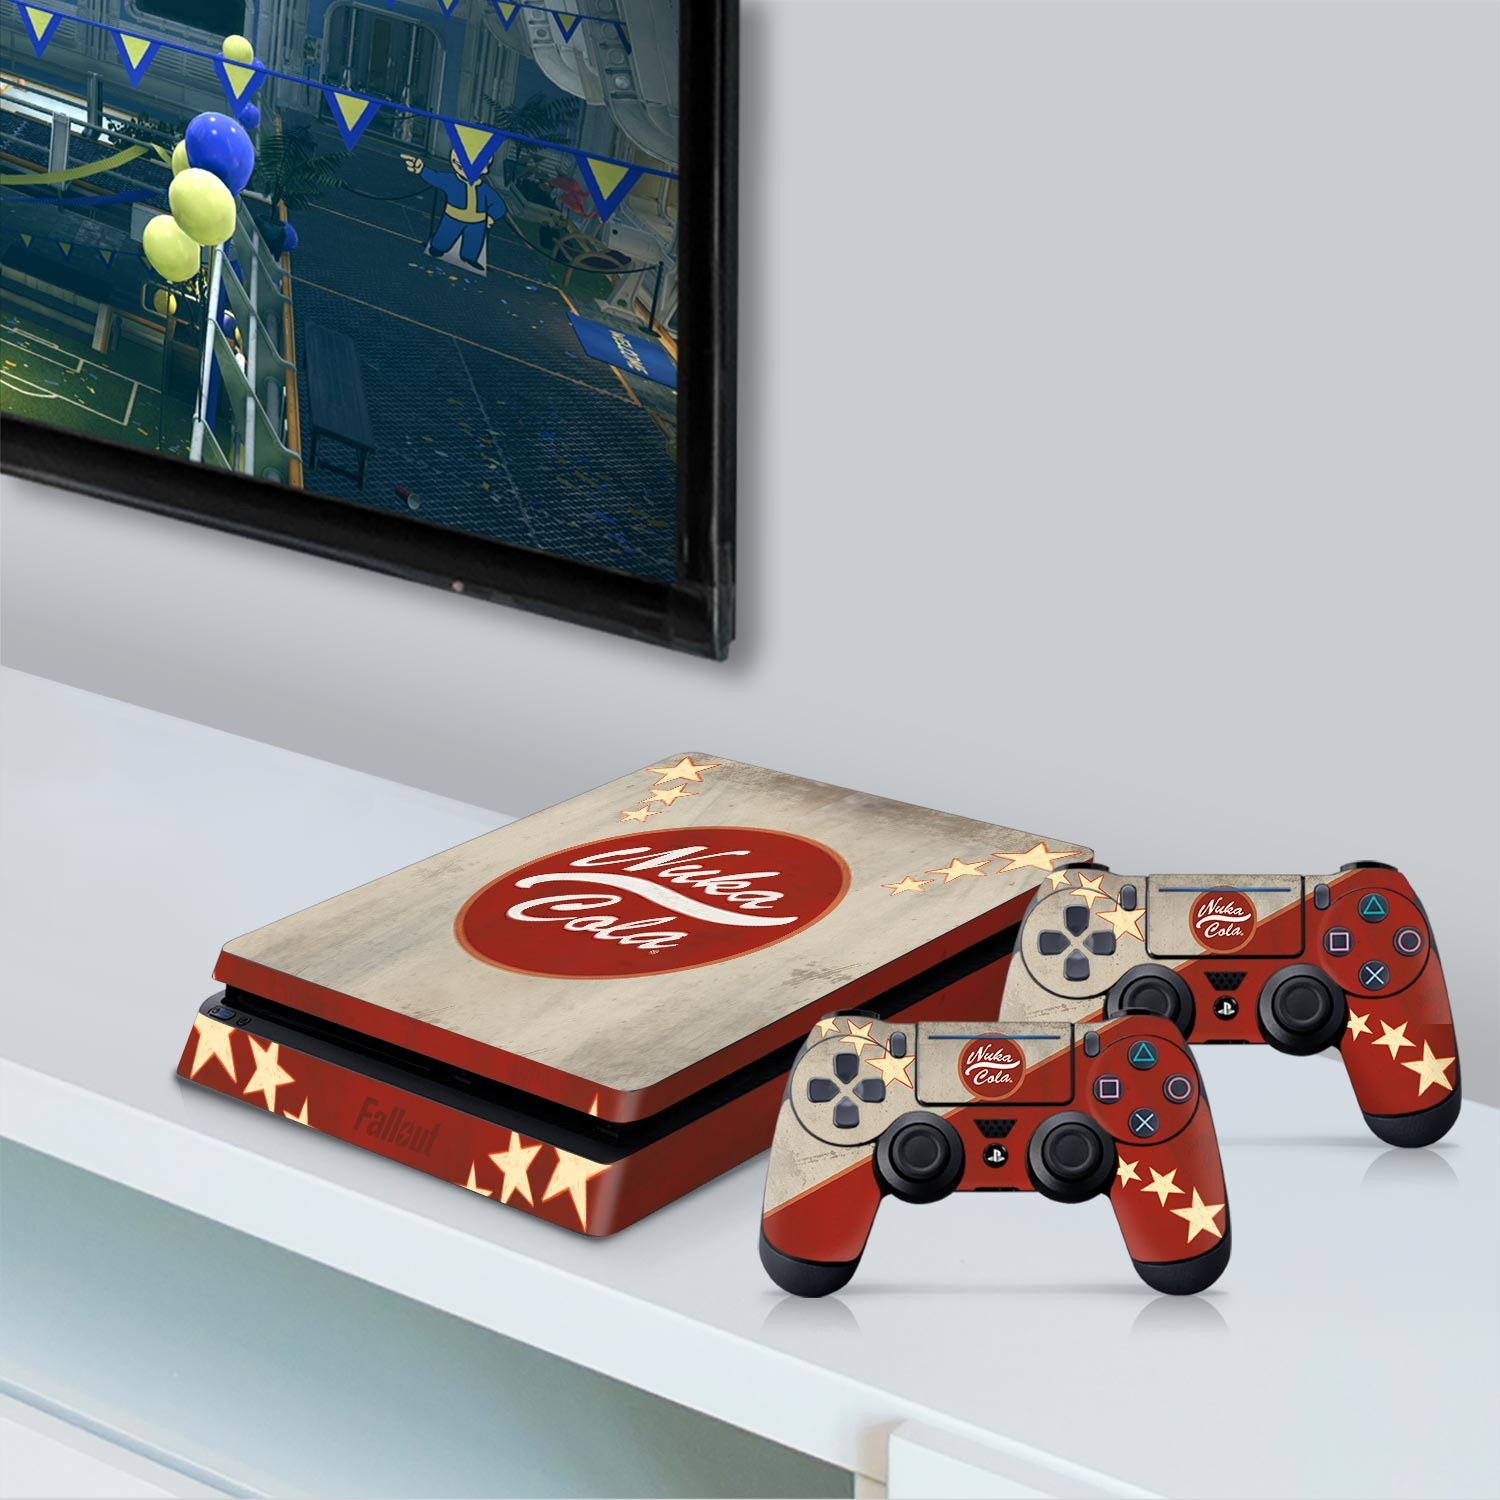 Officially Licensed Console Skin Bundle for PS4 Slim - Fallout - Nuka Cola